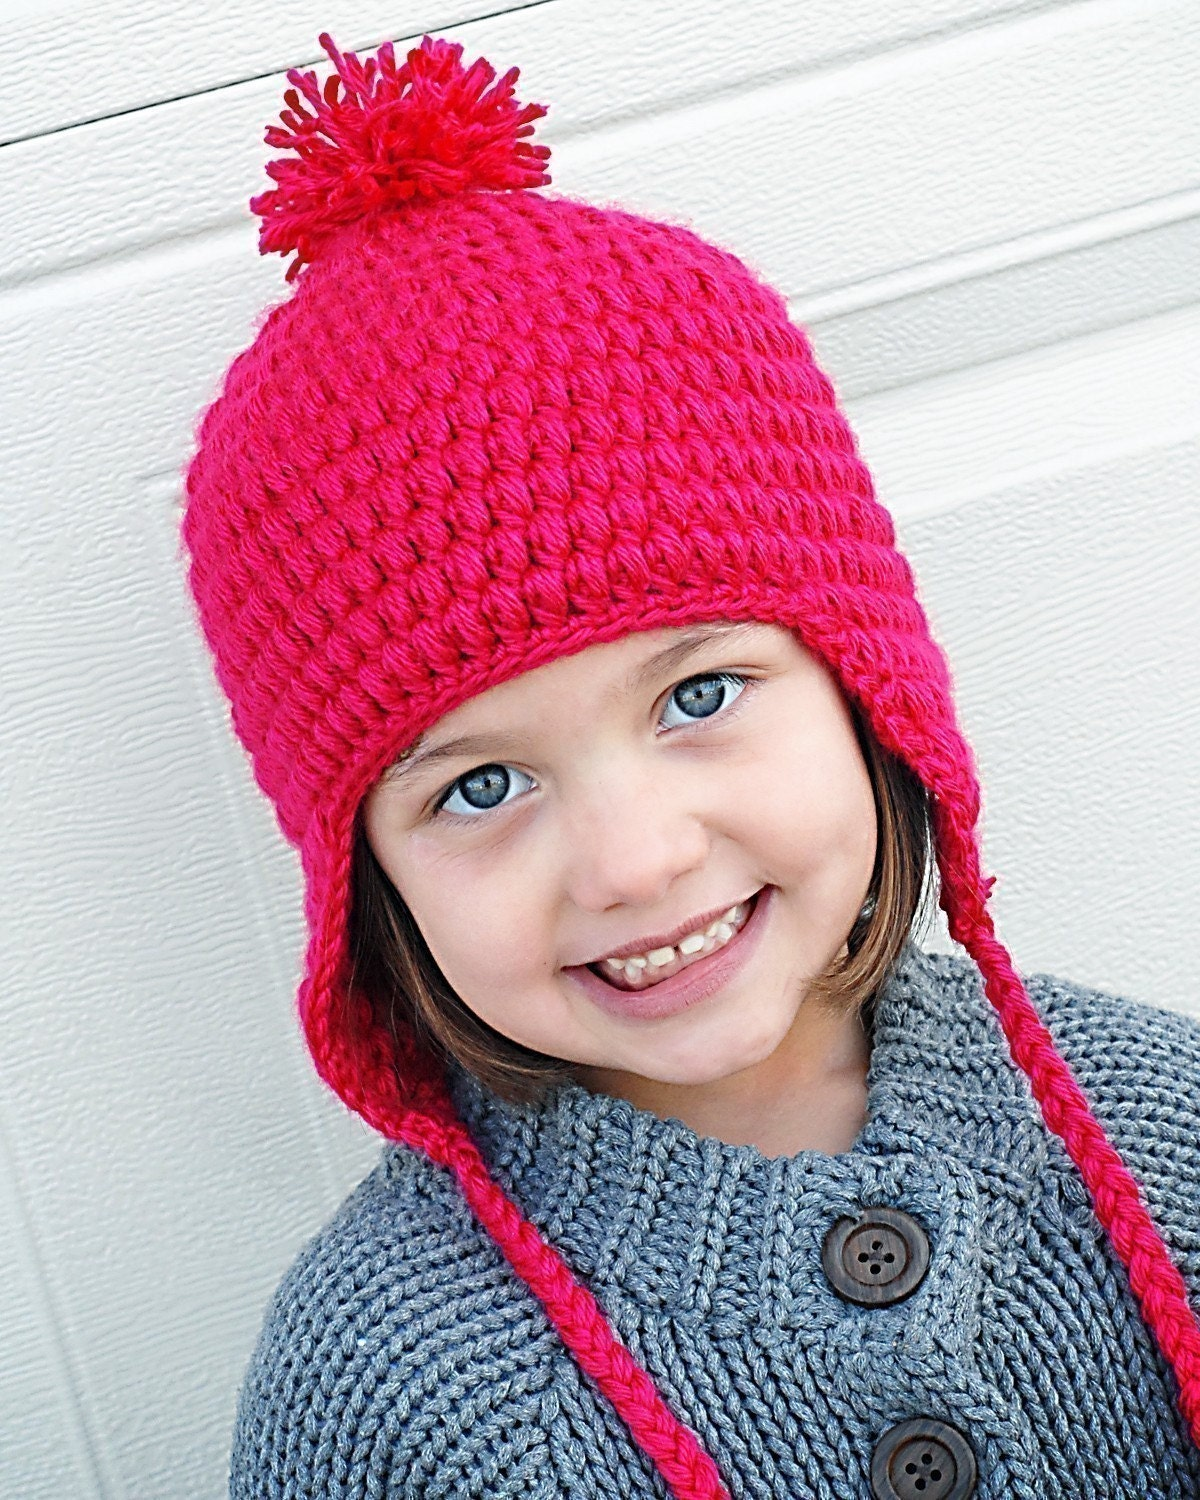 Easy Crochet Hat Pattern With Ear Flaps : Puffy Earflap Hat Crochet Pattern Instant by adrienneengar ...